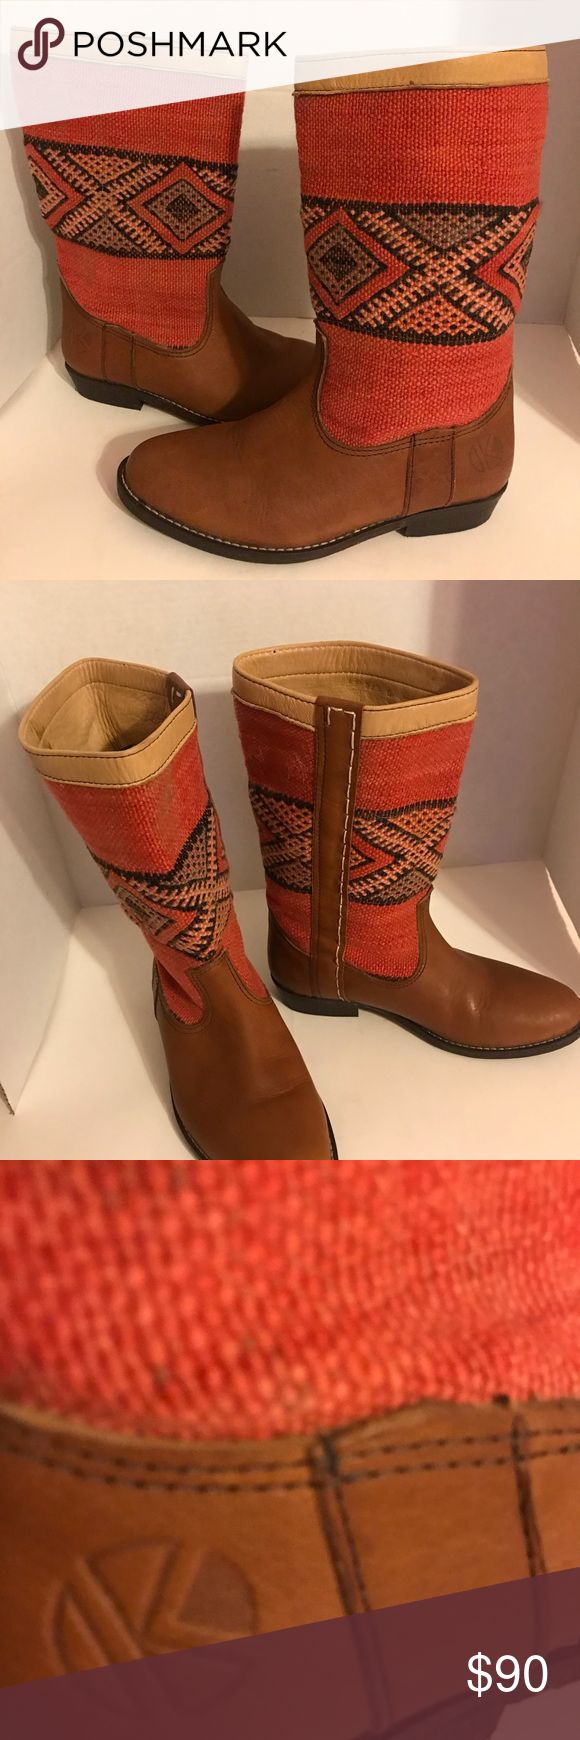 Kiboots Stylish and affordable, Kiboots shoes have begun to flood international markets. Kiboots is part of an ethics movement with its fair trade policy, and it is environmentally friendly when selecting materials. Adopt the Kiboots look for a bohemian charm ridden with history Thy are used only few times in the car ! Kiboots Shoes Ankle Boots & Booties